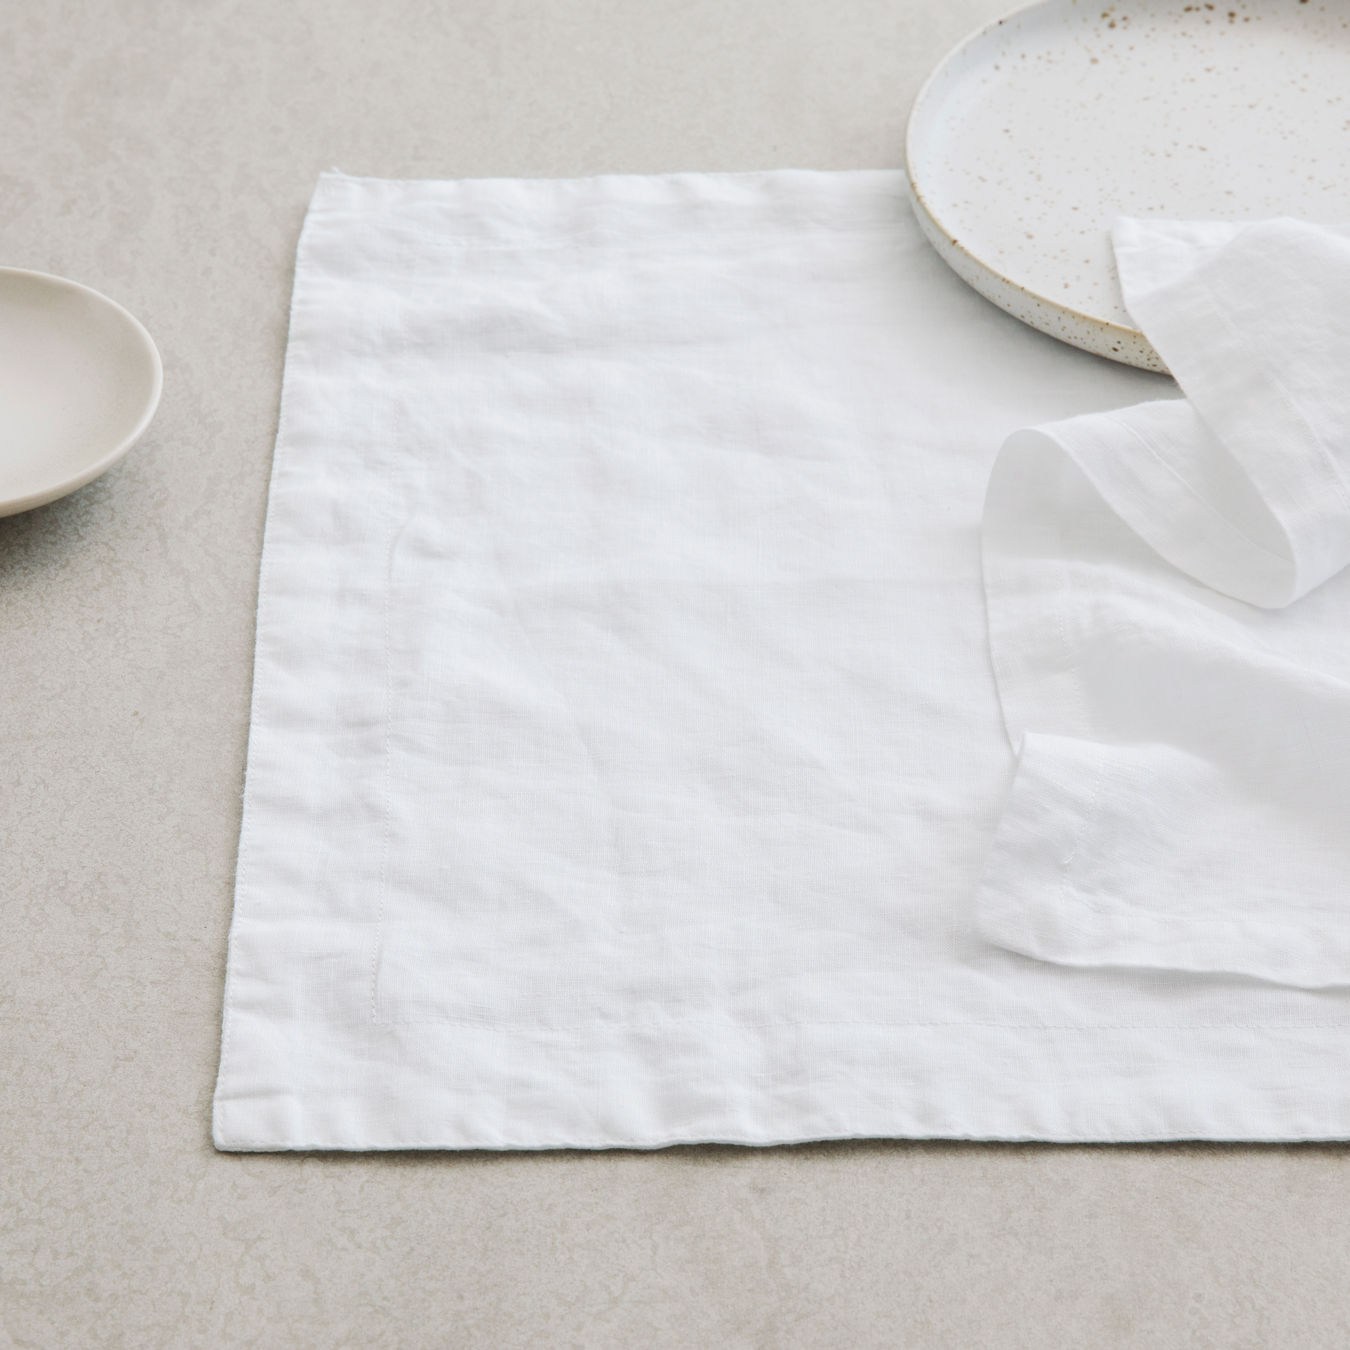 Linen Placements Set of Four - White